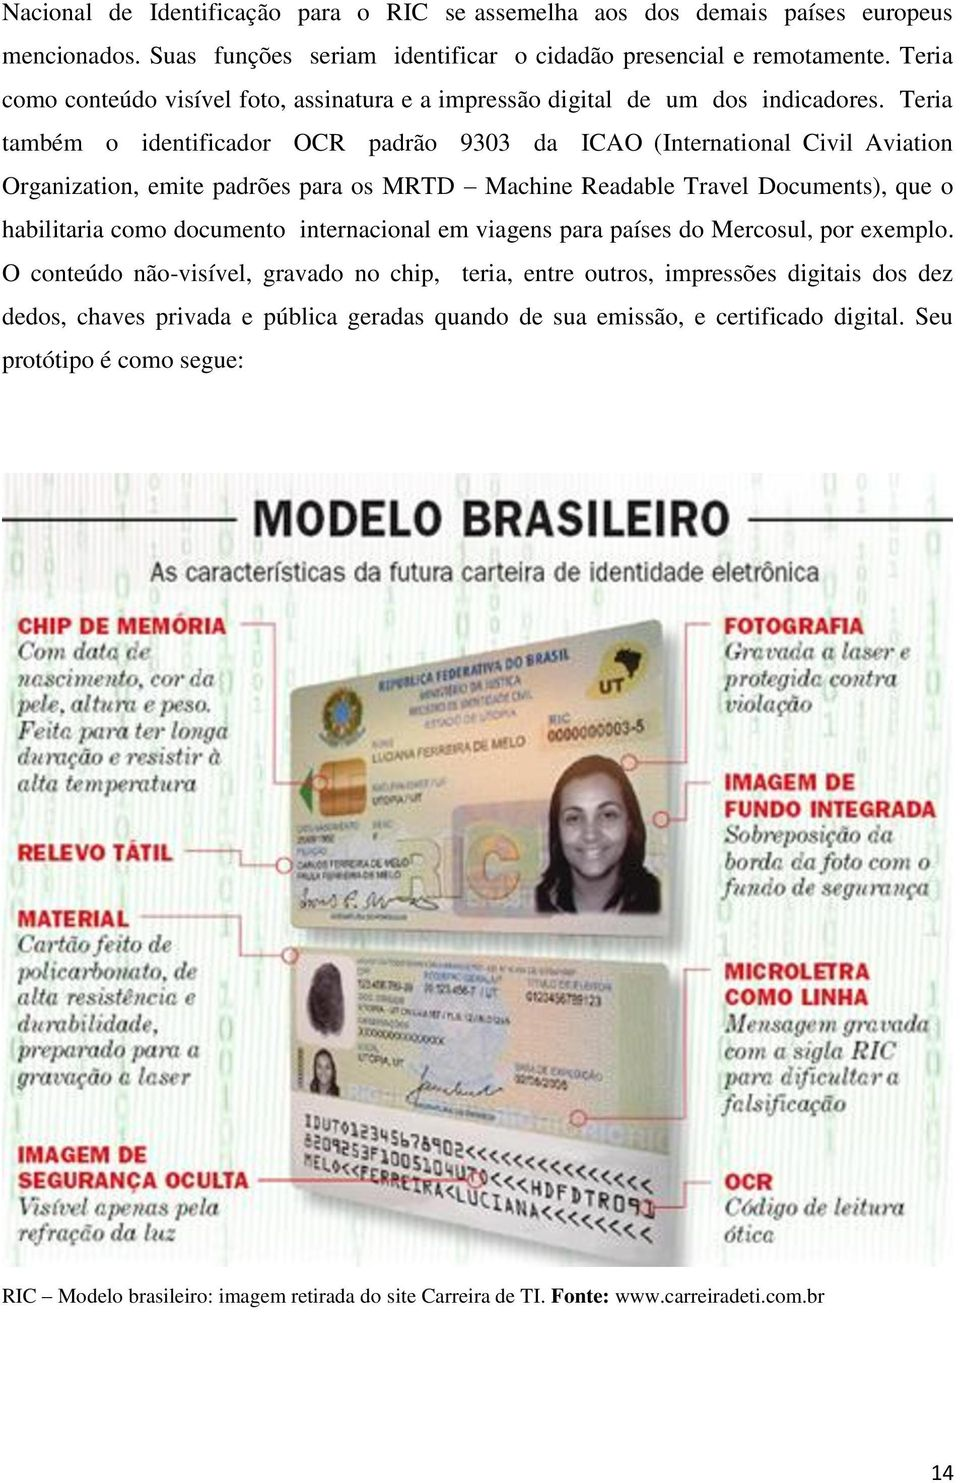 Teria também o identificador OCR padrão 9303 da ICAO (International Civil Aviation Organization, emite padrões para os MRTD Machine Readable Travel Documents), que o habilitaria como documento